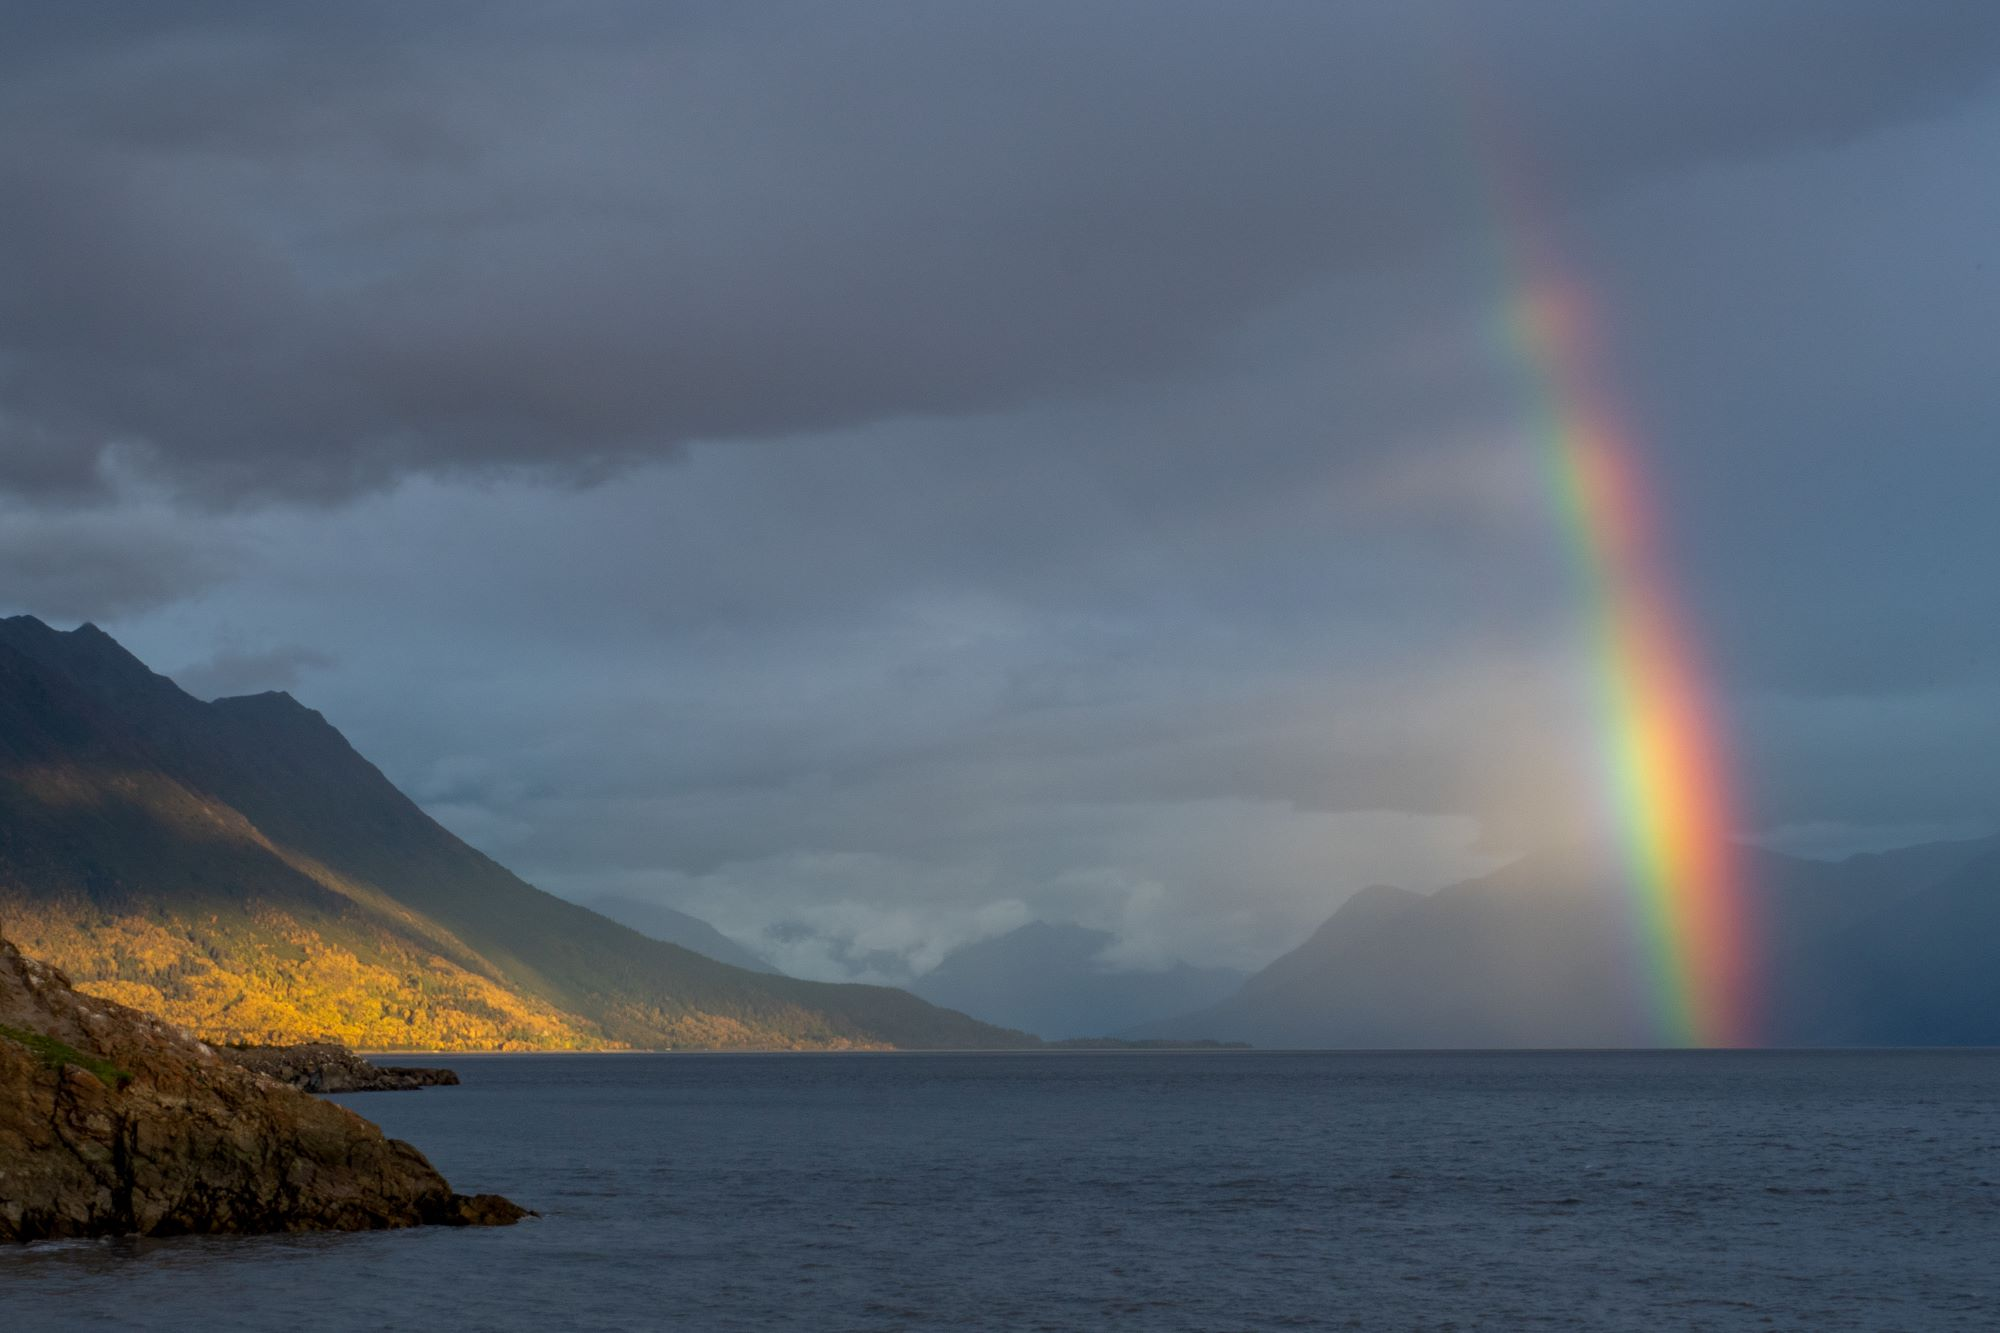 Rainbow over Turnagain Arm